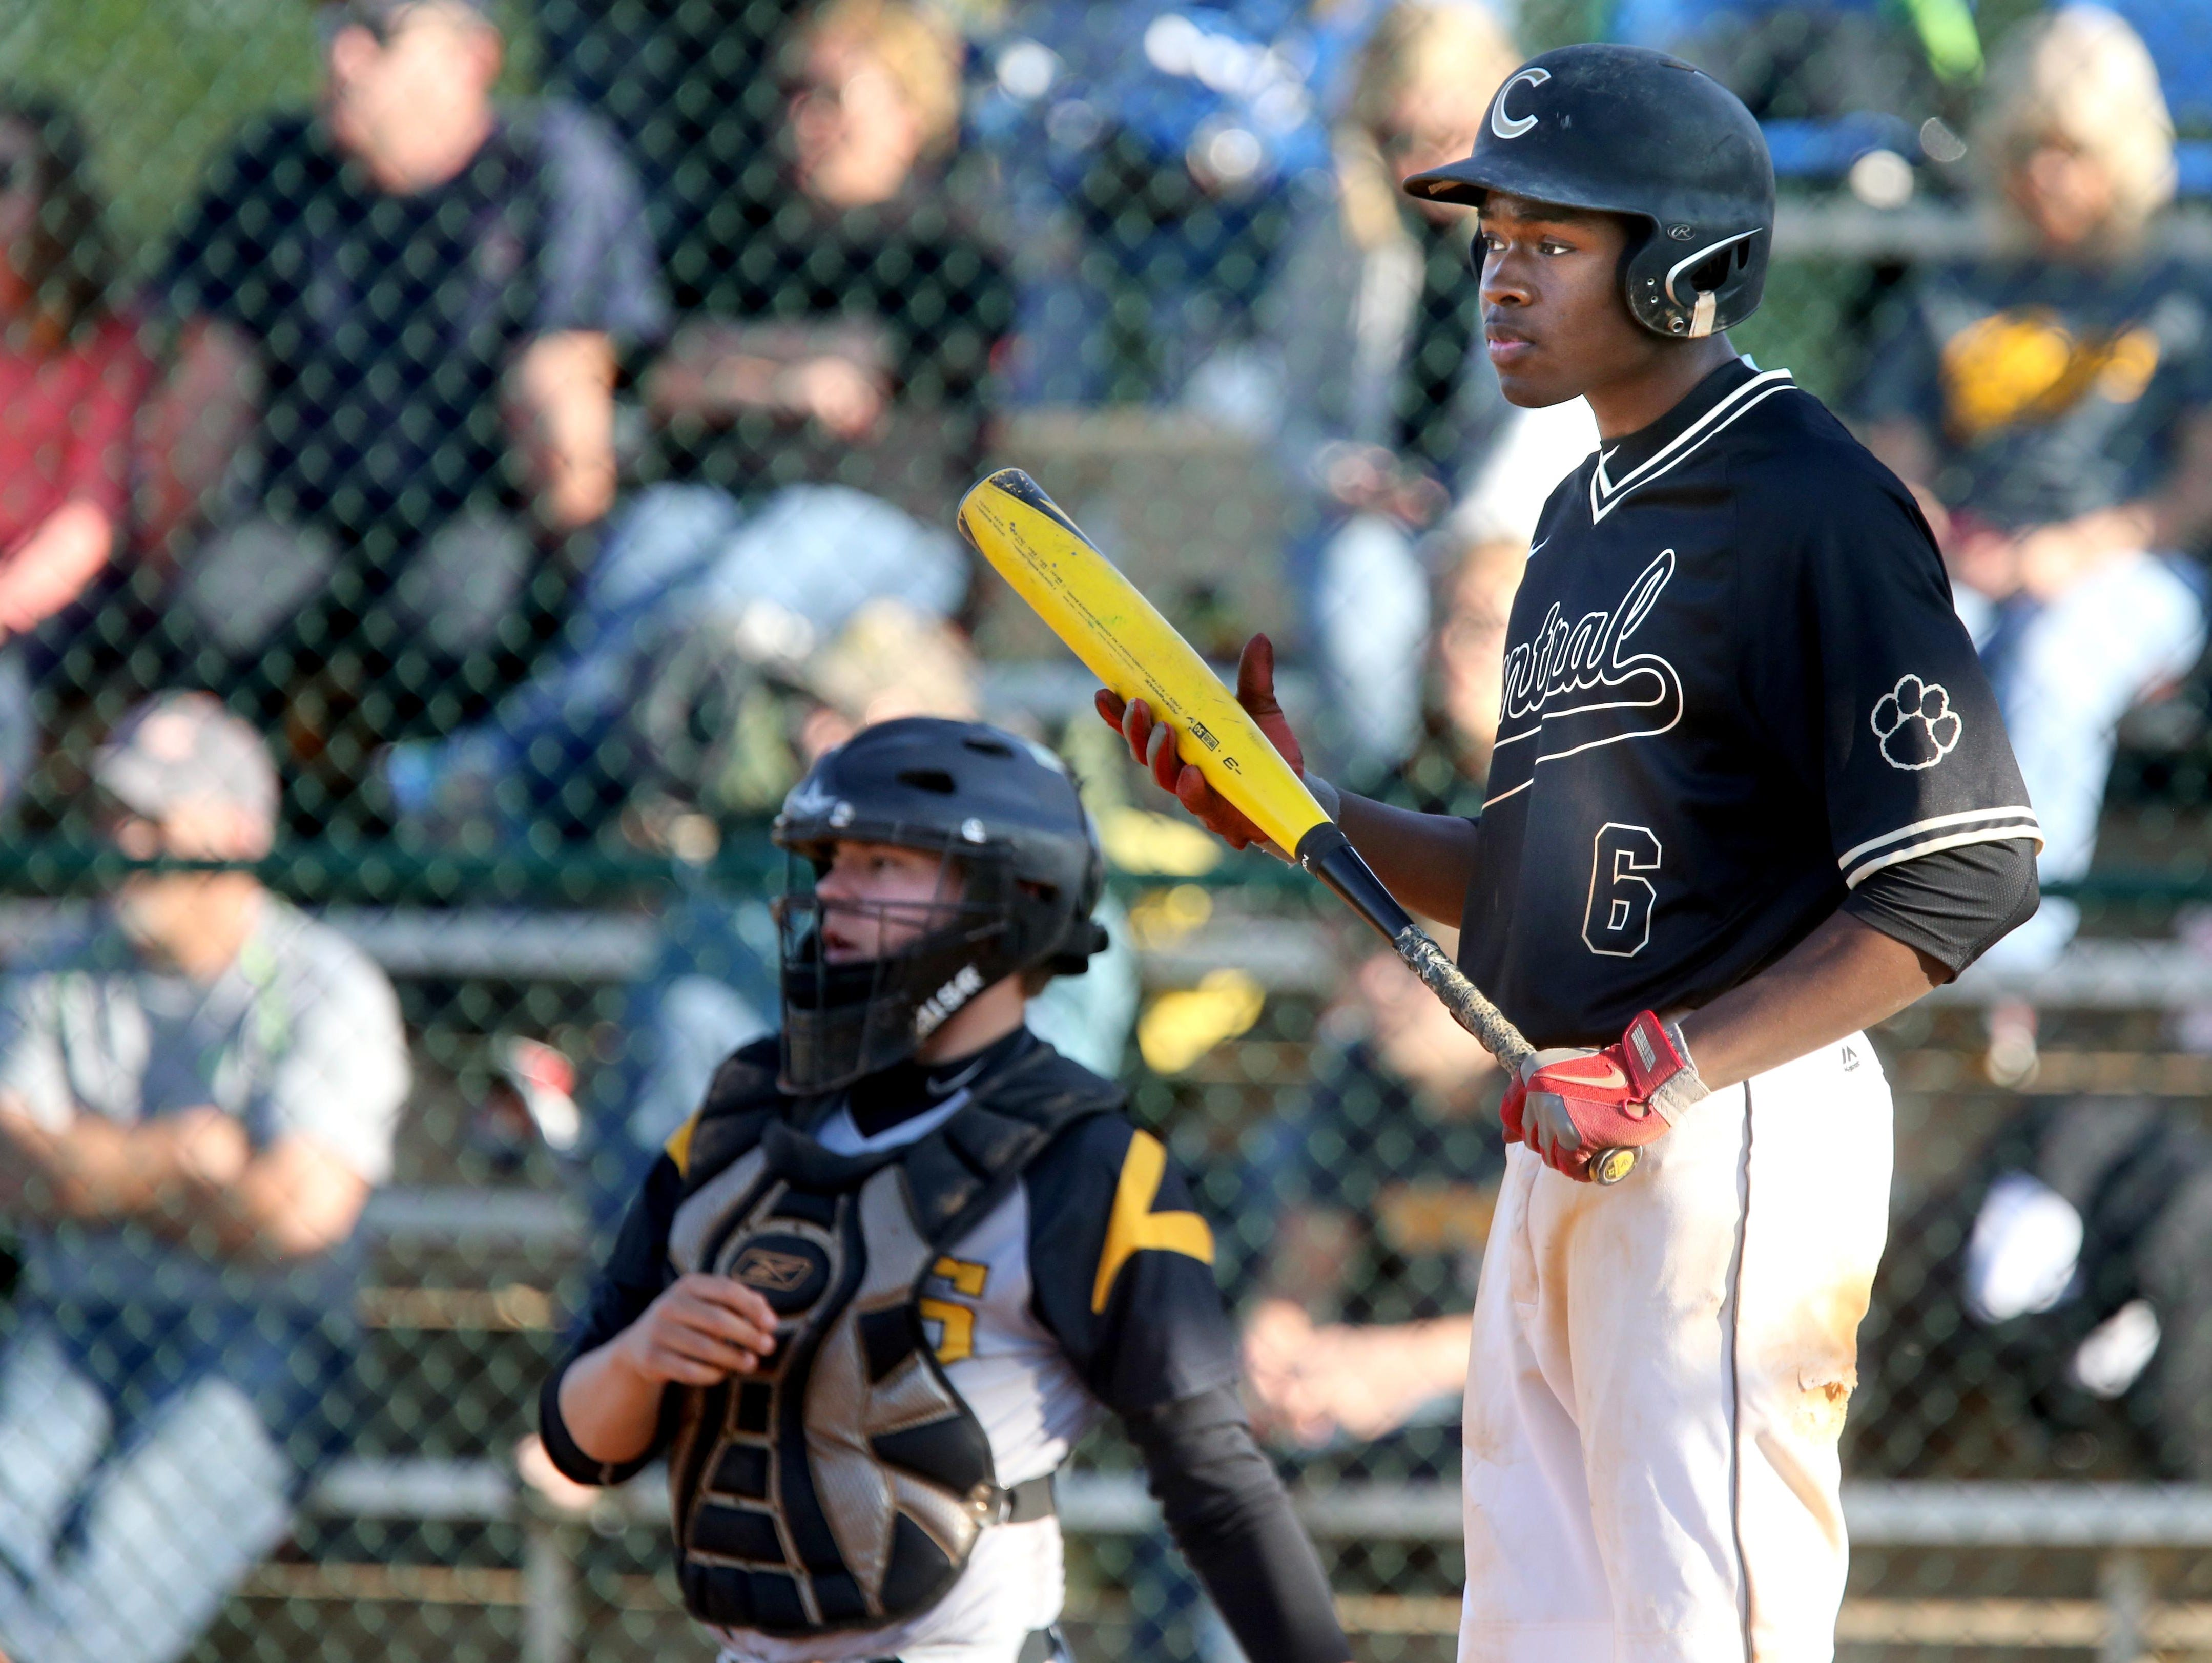 Central Magnet's Jordan Jackson was named to the TSWA Class AA All-State Team.